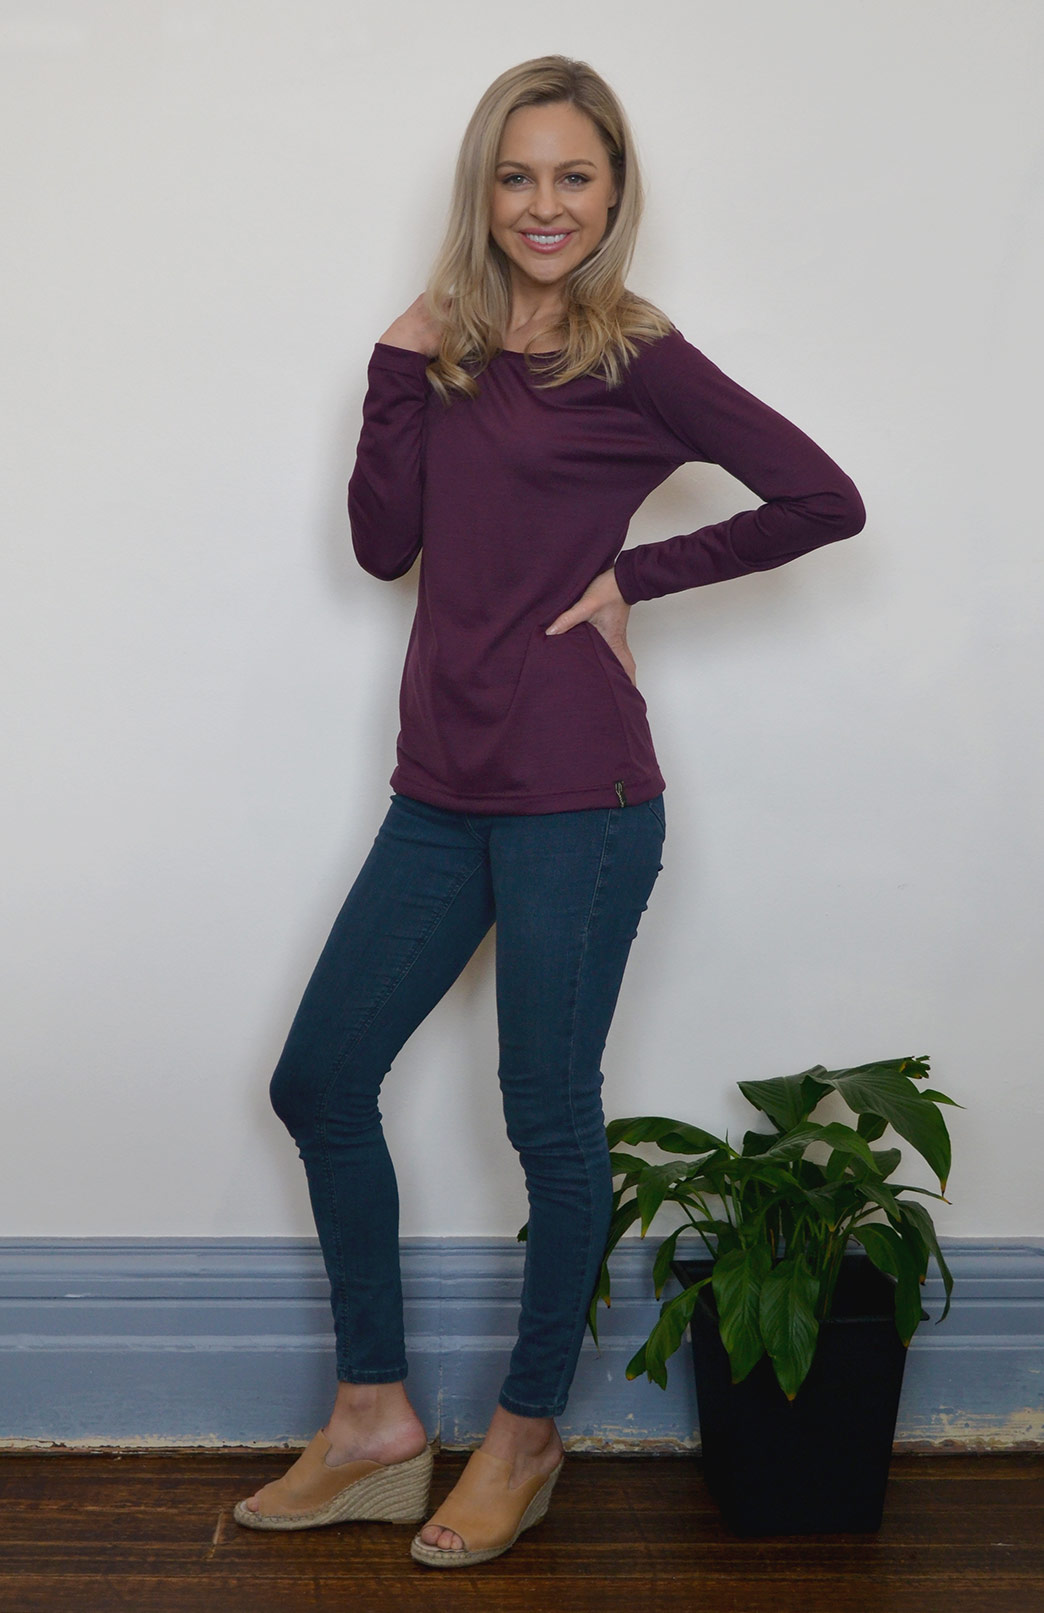 Round Neck Top (Lightweight) - Women's Lightweight Merino Wool Aubergine Purple Long Sleeved Round Neck Top - Smitten Merino Tasmania Australia